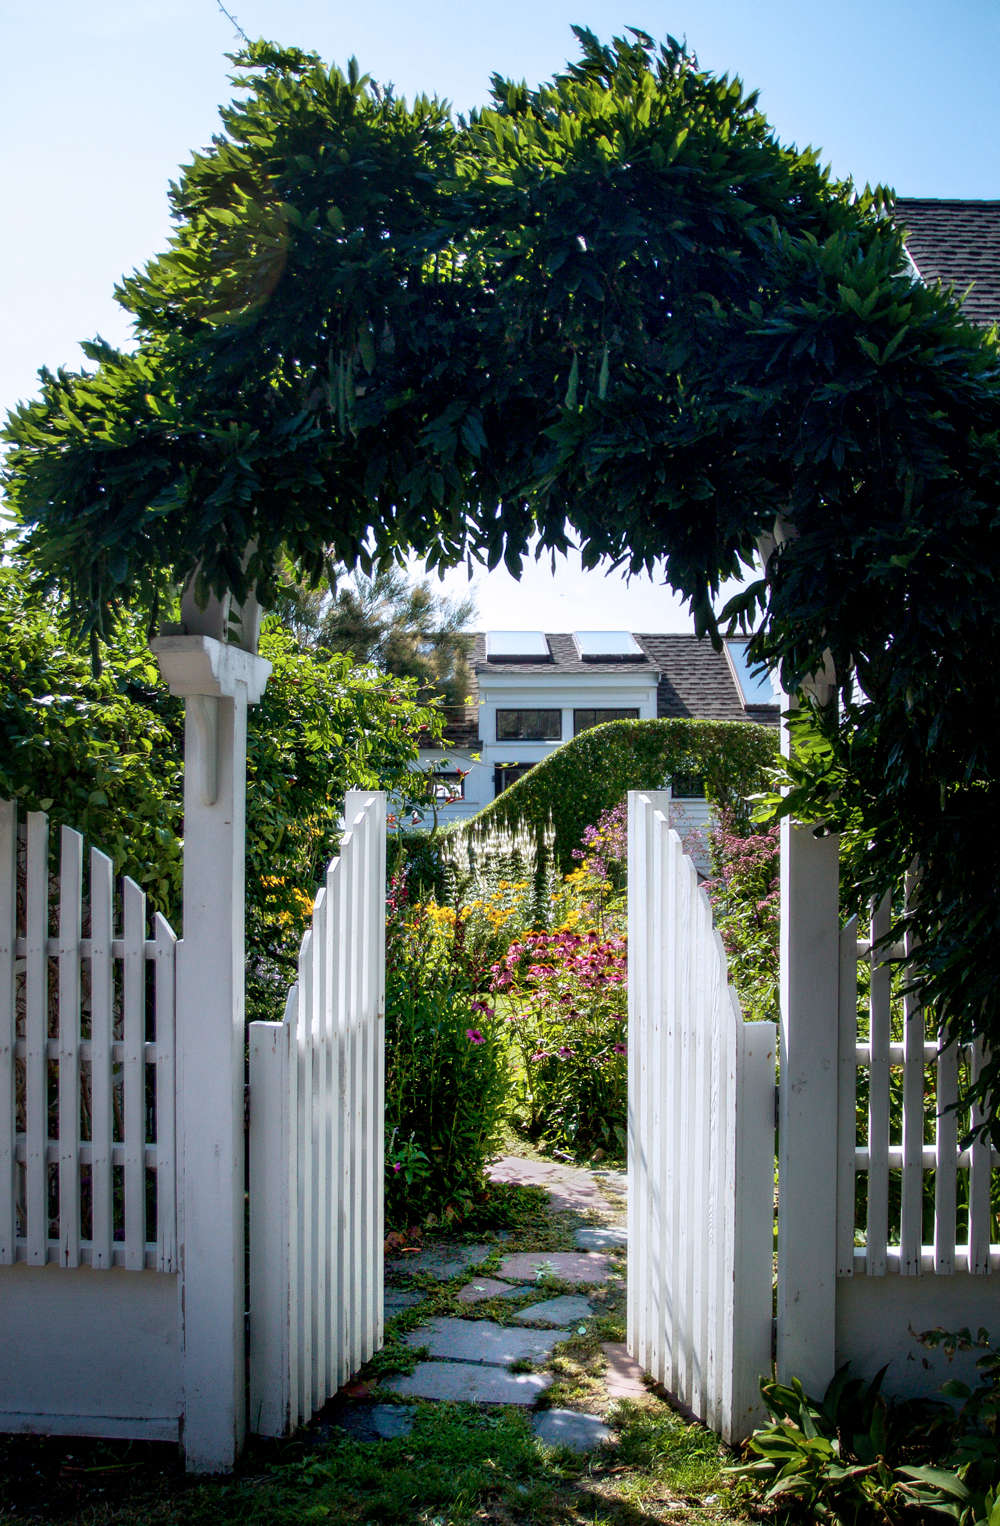 In this East End home of a local poet, a wisteria archway leading off the street is echoed in the privet hedge toward the back of the yard.